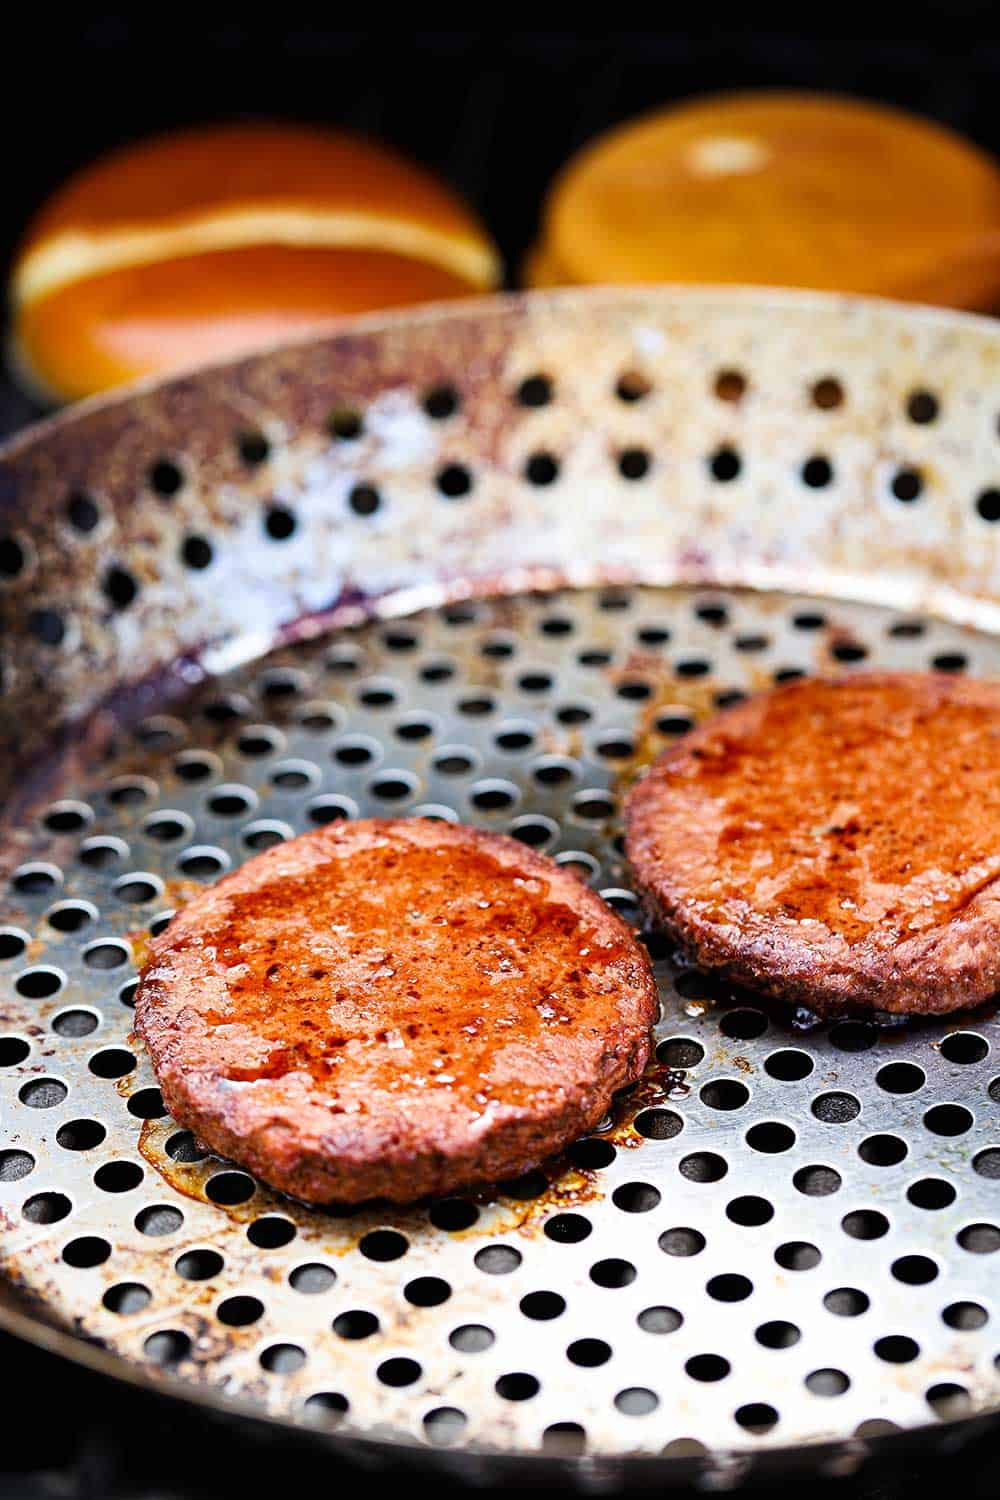 Two plant-based burgers on a grill pan on a grill in front of two hamburger buns, also on the grill.